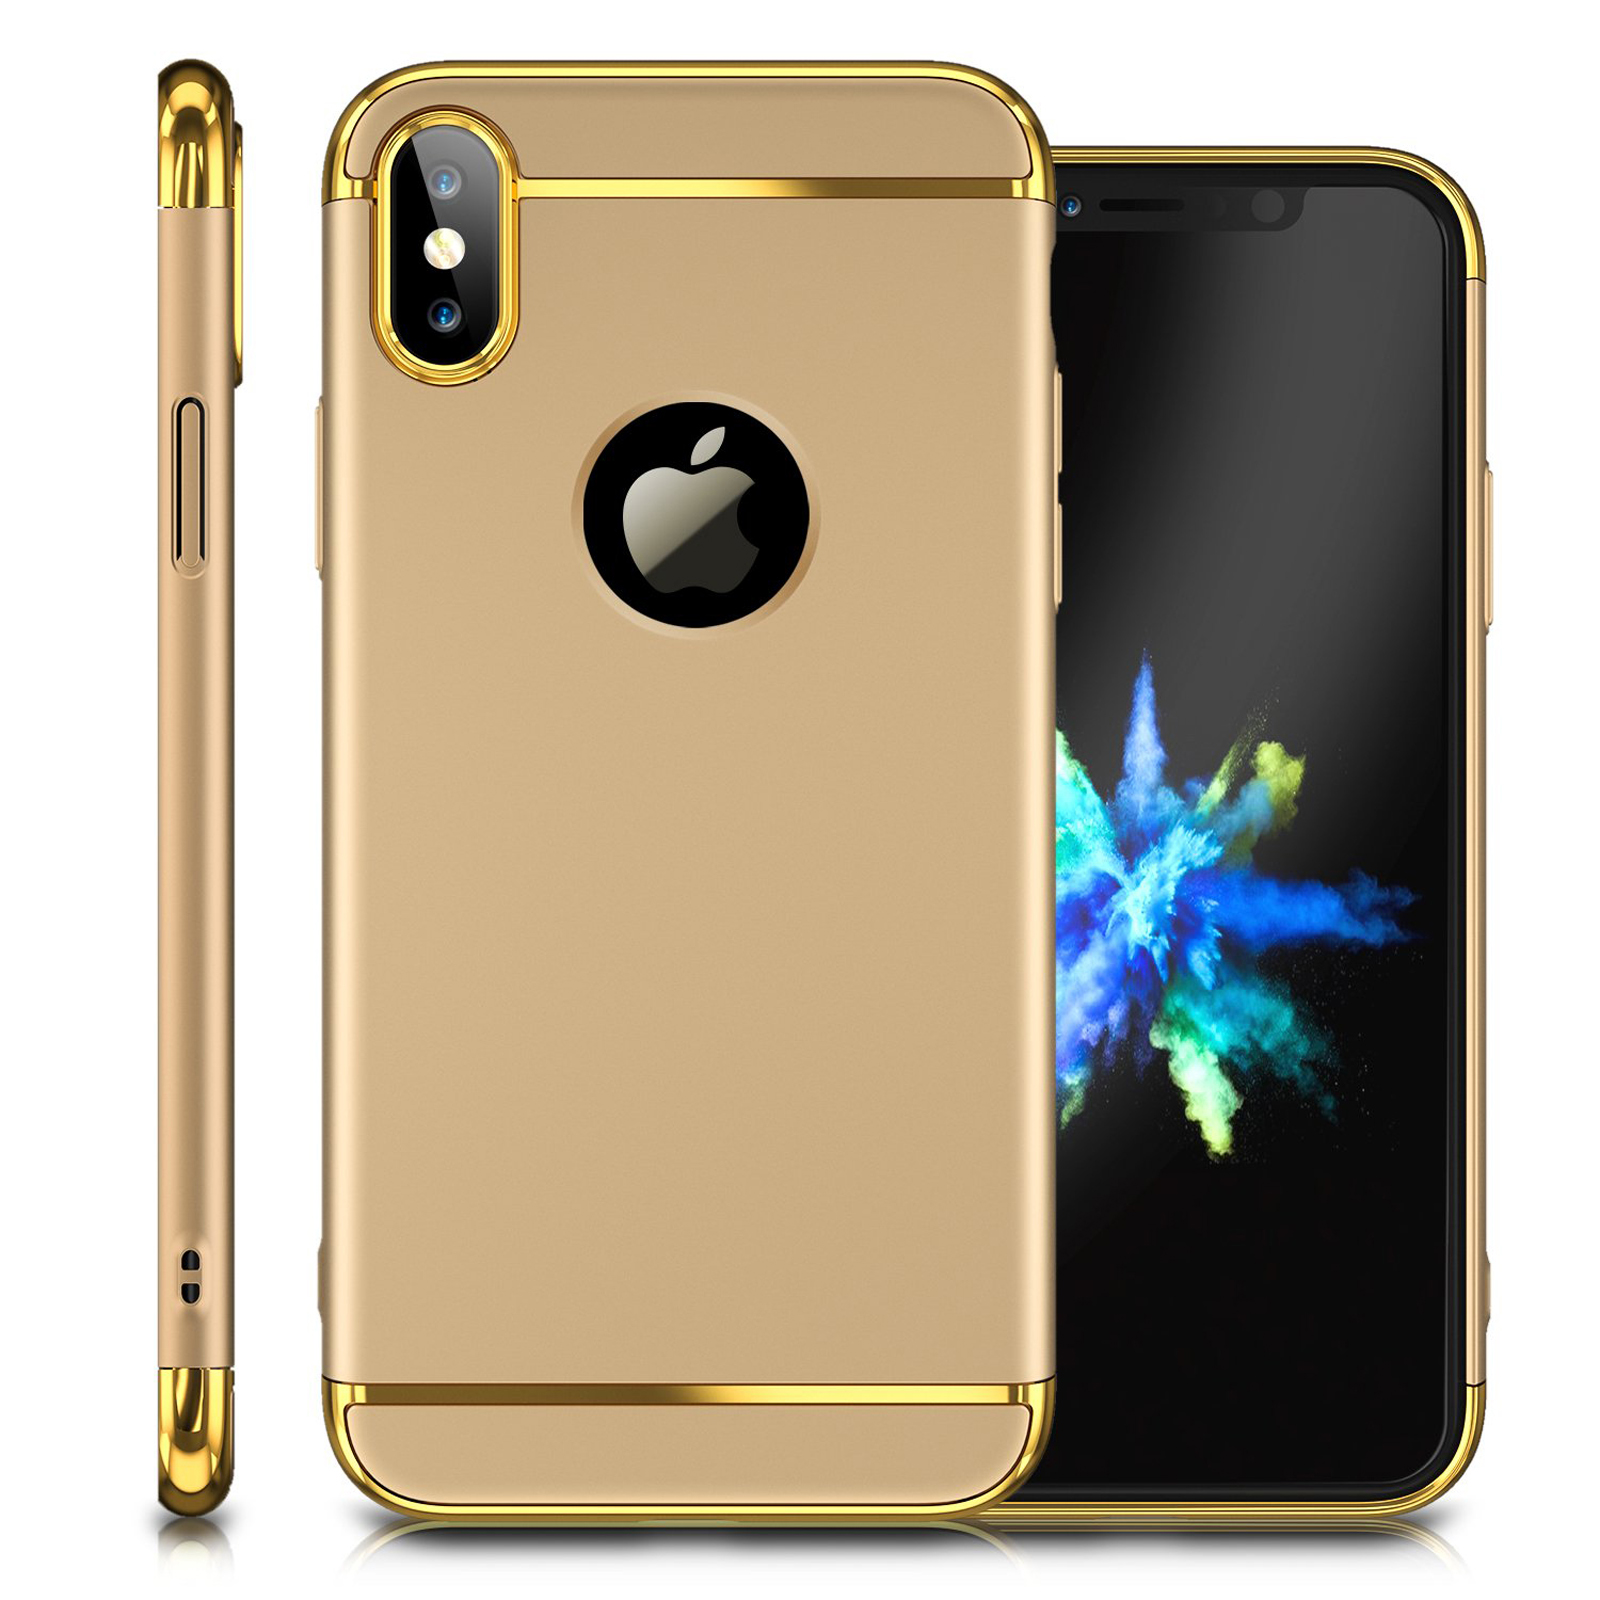 thumbnail 95 - Luxury Matte Case Tempered Glass Cover For Apple iPhone X XS XR Max 10 8 7 6s 6